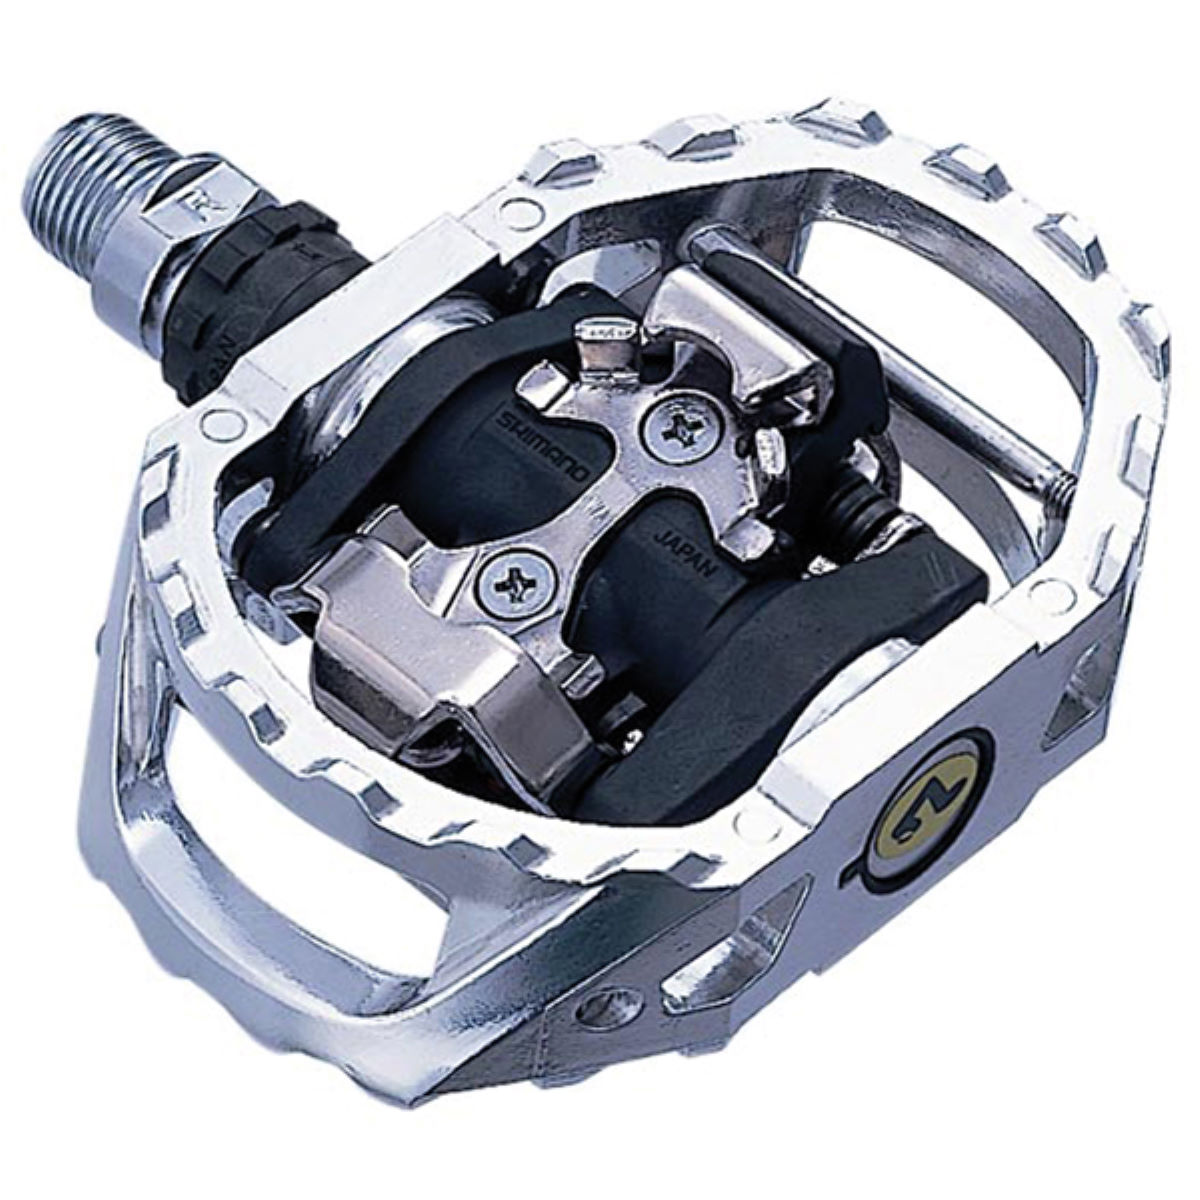 5598aec4aef Wiggle | Shimano PD-M545 Free-Ride Pedals | Clip-in Pedals